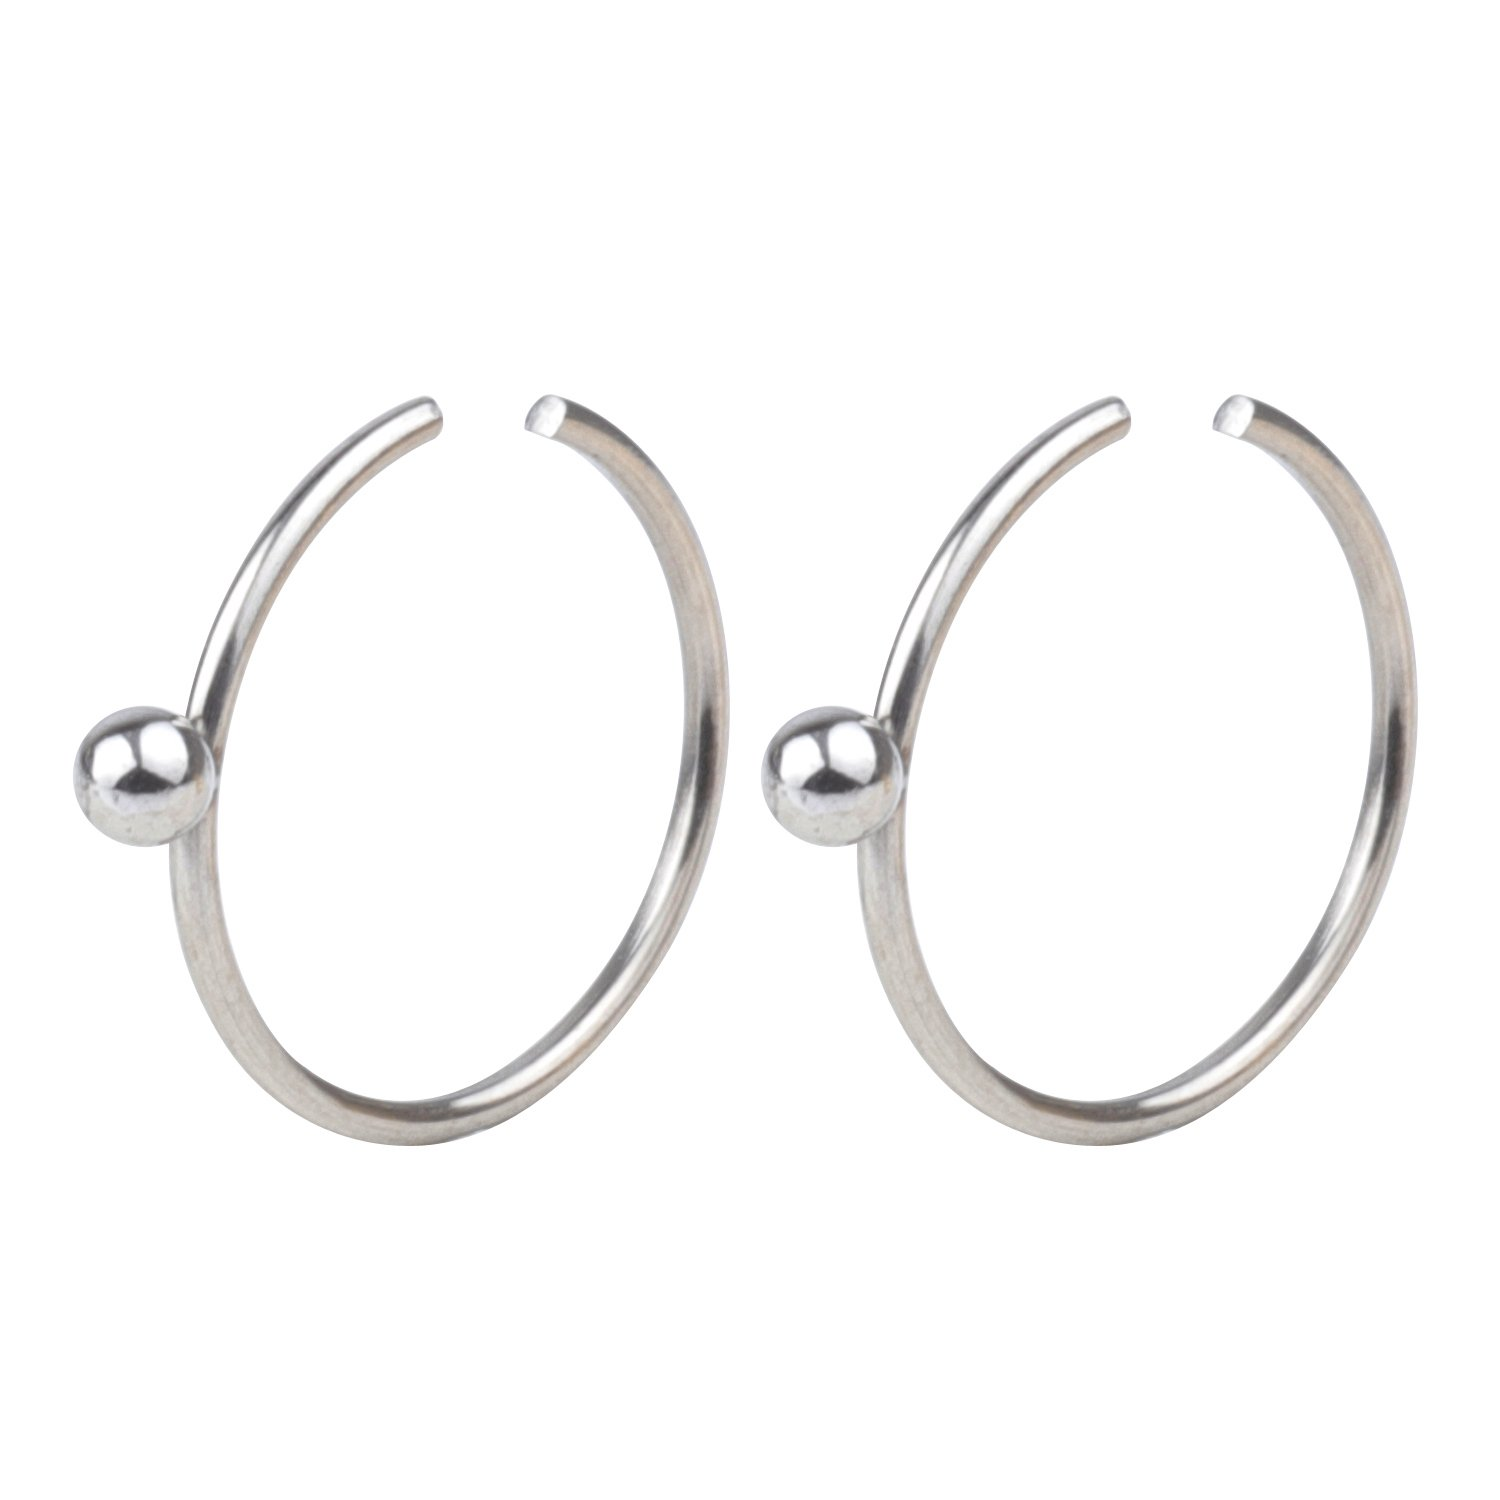 FORYOU FASHION Surgical Steel 22G 10mm Nose Rings Piercing Jewelry Hoop Nose Ring